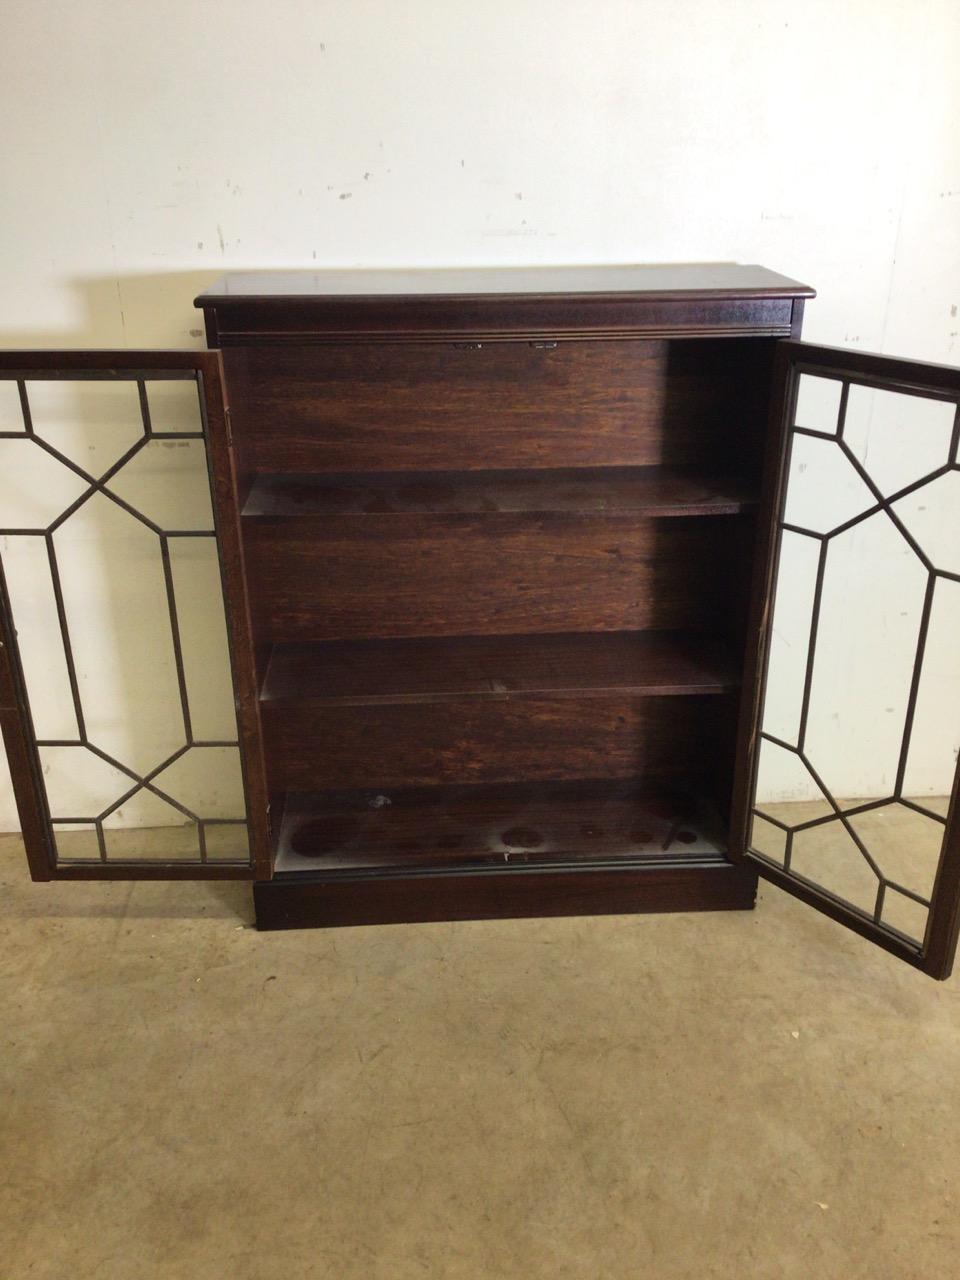 A small mahogany glazed bookcase with interior shelves. W:83cm x D:27cm x H:102cm - Image 3 of 6